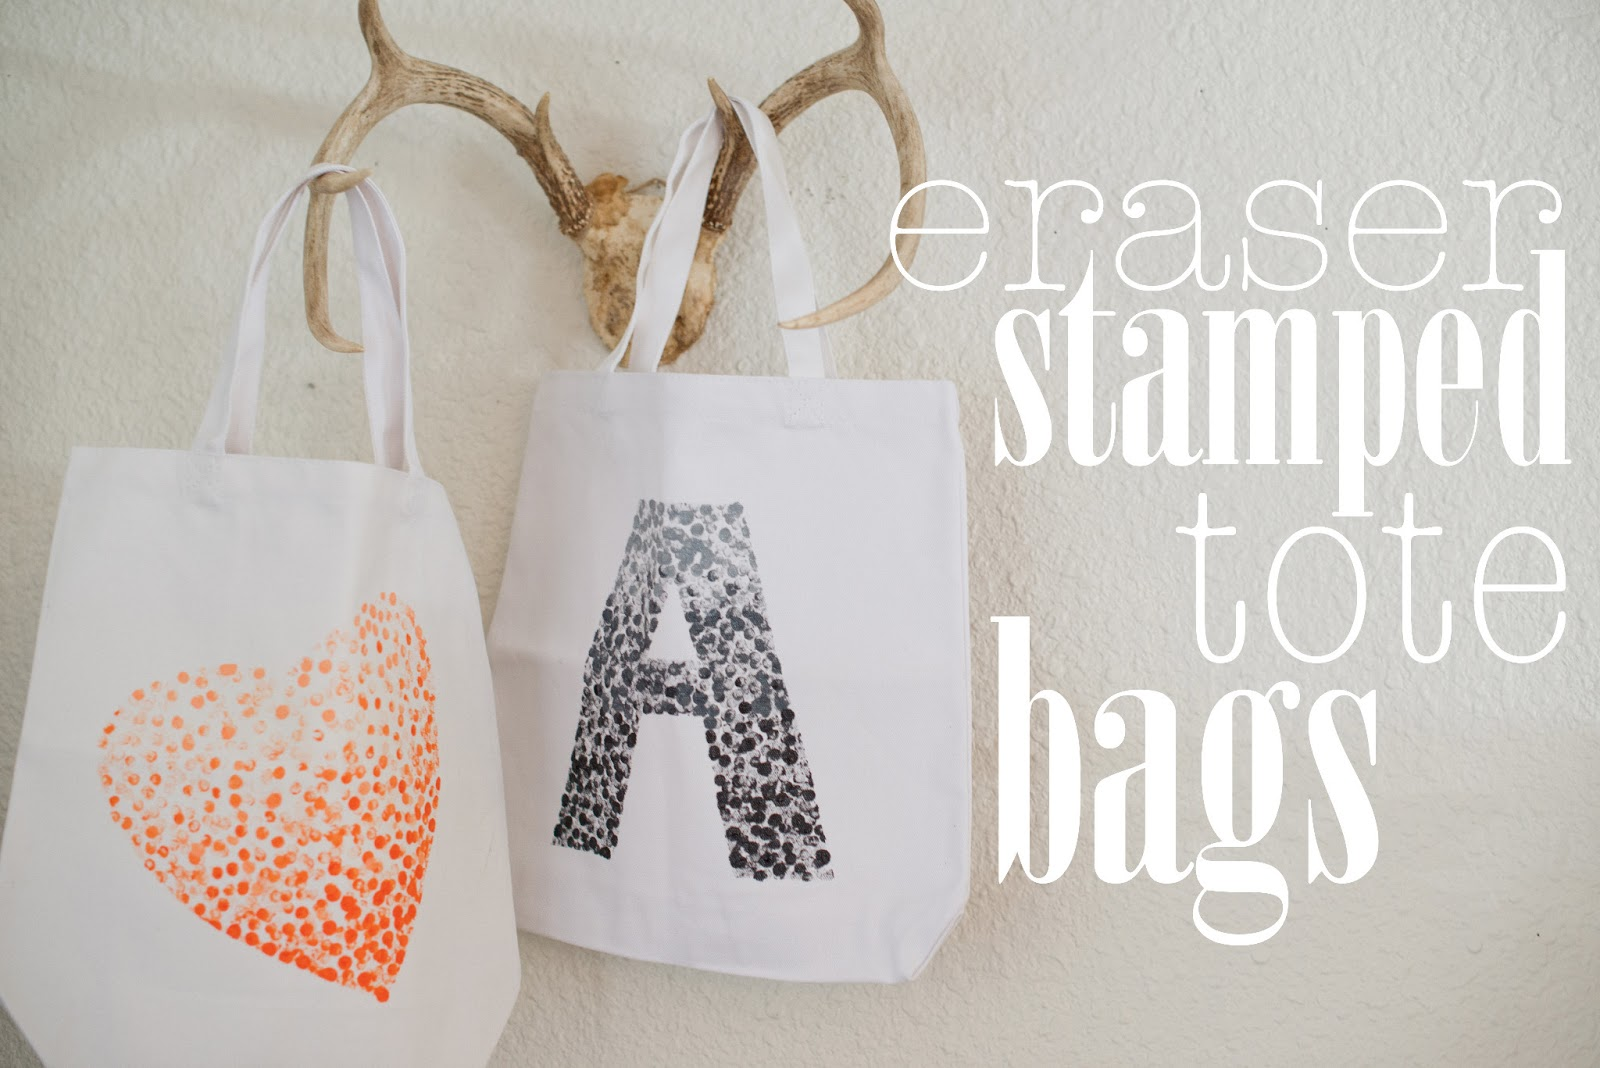 Diy Eraser Stamped Tote Bag Tutorial